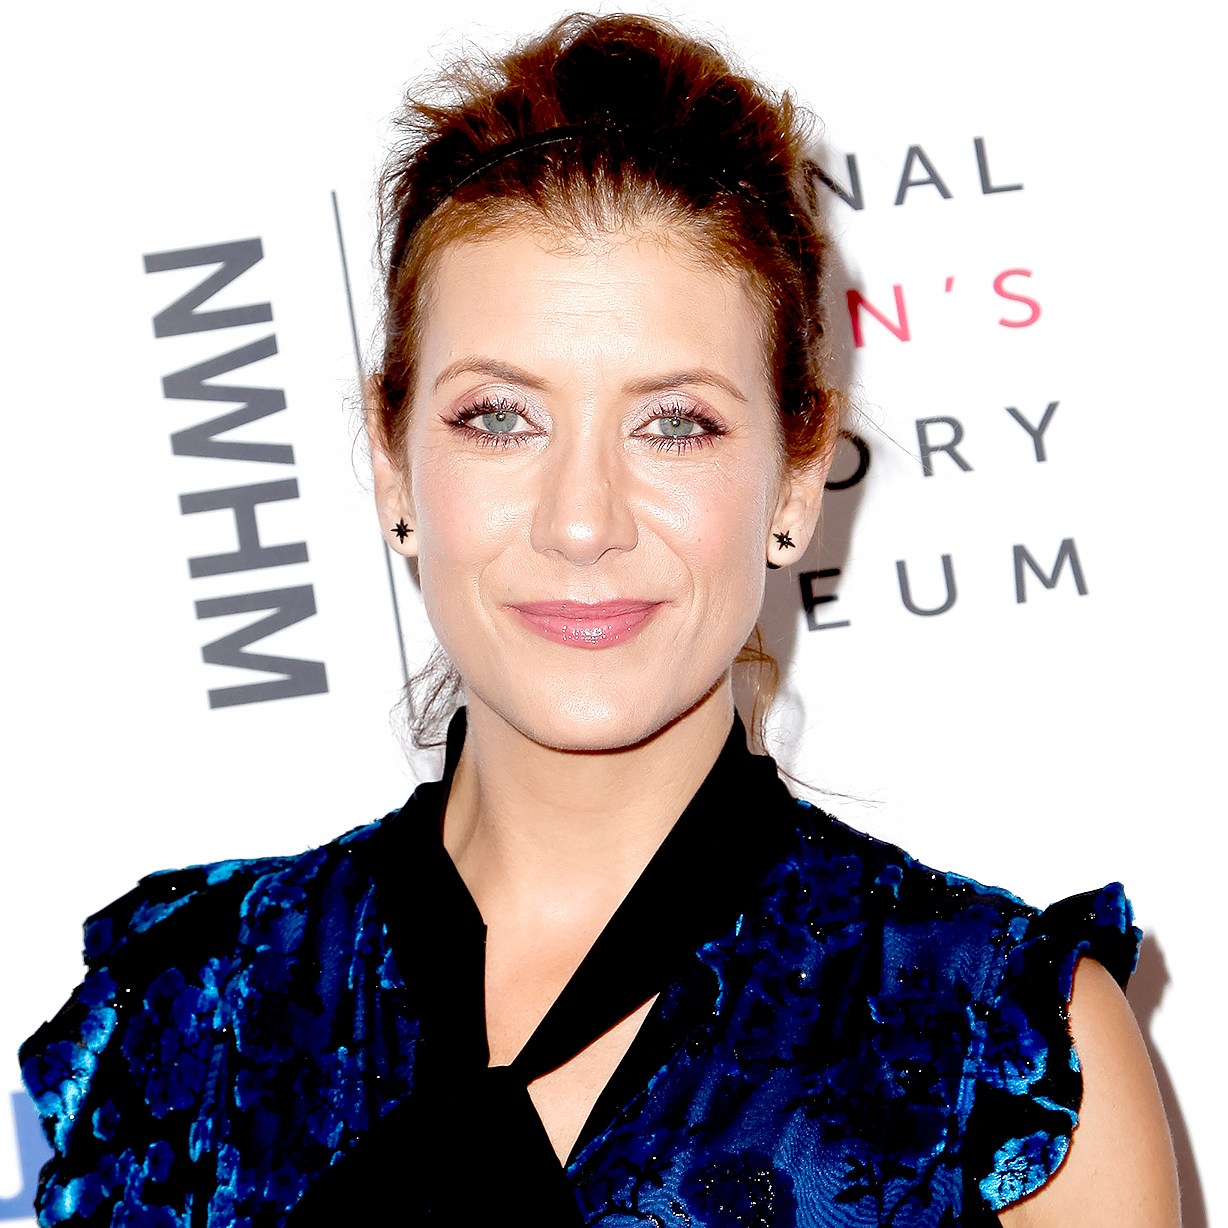 Kate Walsh attends the 6th Annual Women Making History Awards at The Beverly Hilton Hotel on September 16, 2017 in Beverly Hills, California.